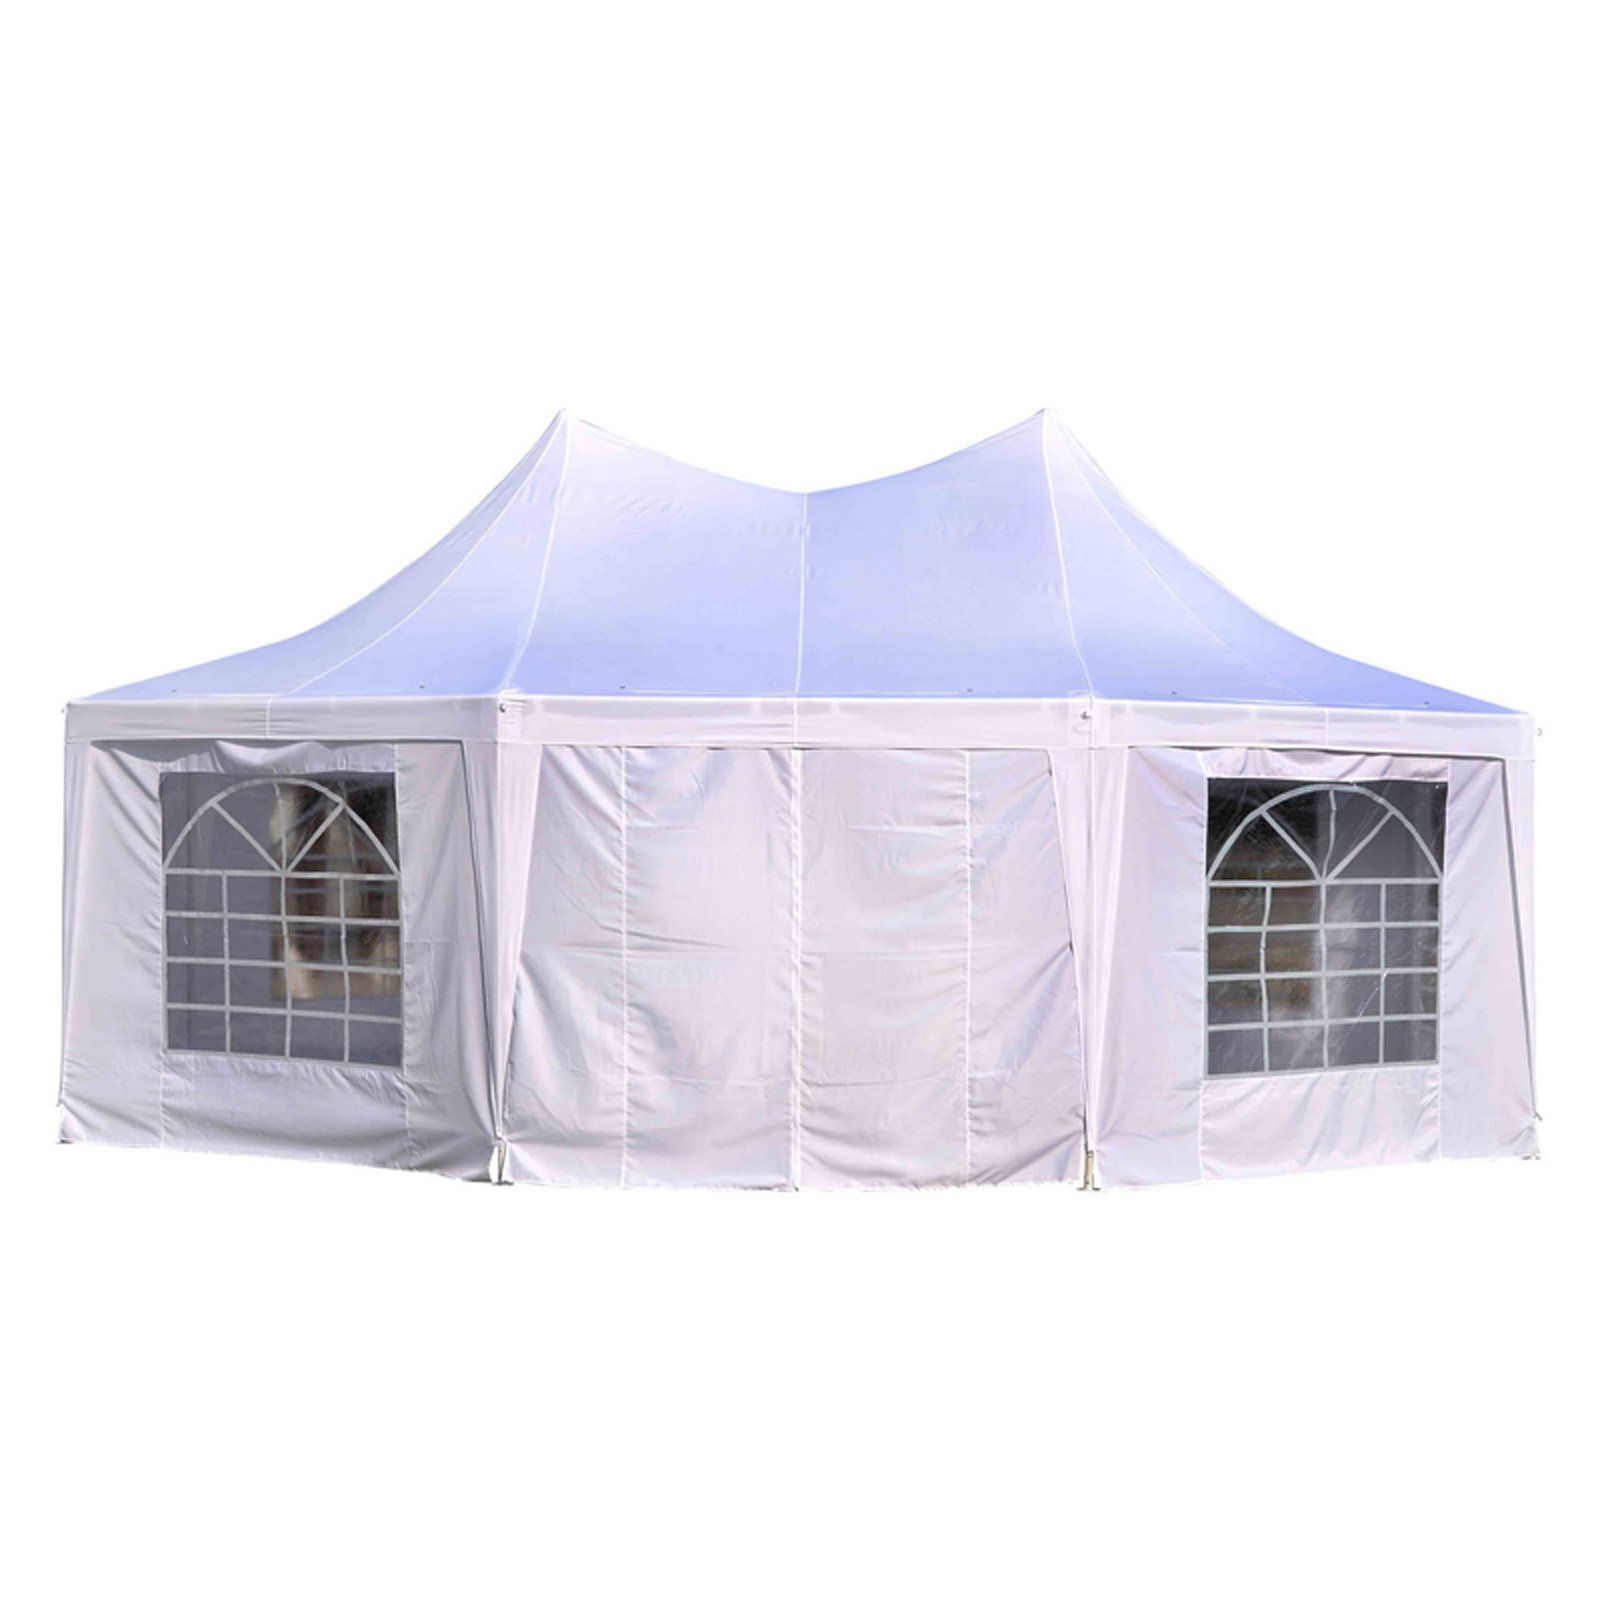 Outsunny 22 x 16 ft. Large Octagon Party Gazebo Canopy Tent  sc 1 st  Walmart & Outsunny 22 x 16 ft. Large Octagon Party Gazebo Canopy Tent ...